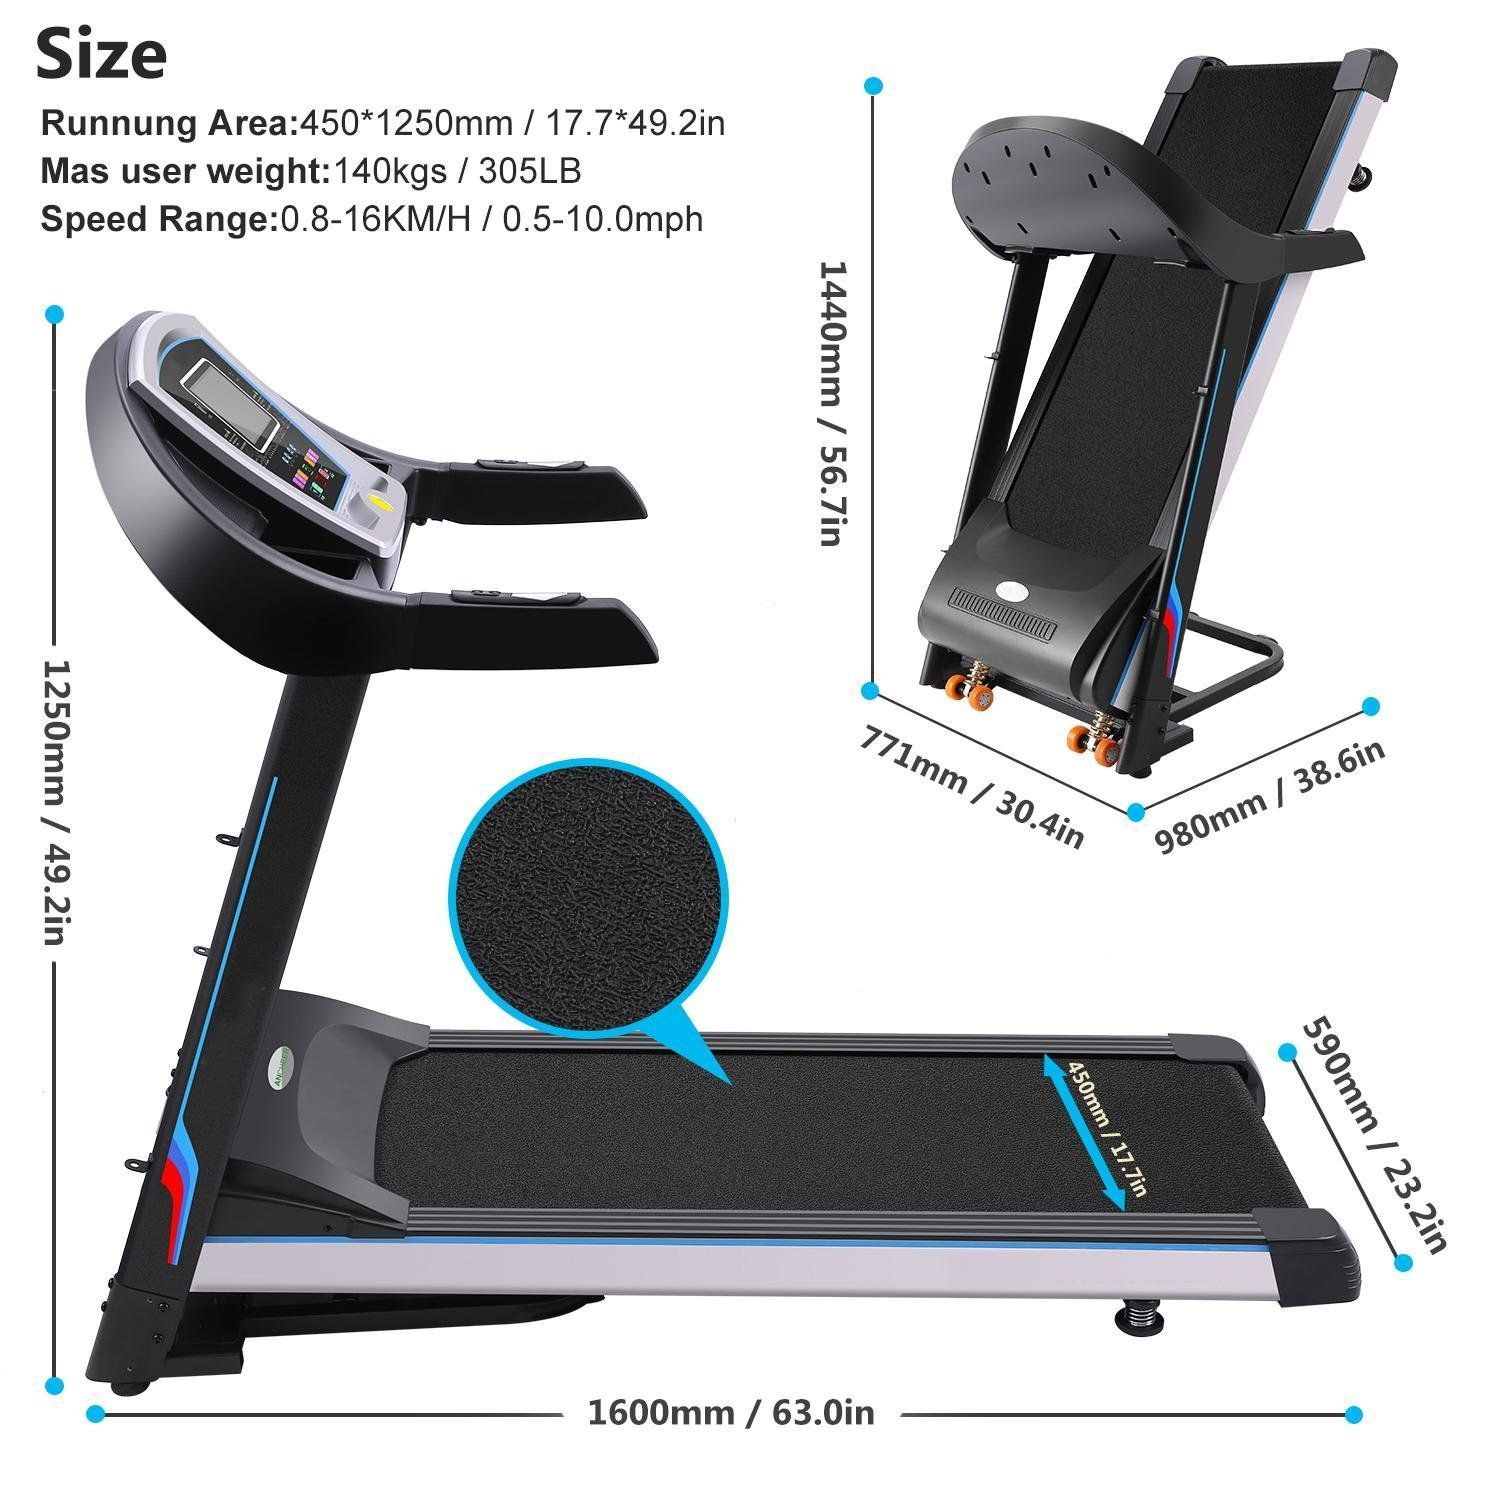 Asatr Easy Assembly Motorized Running Machine with 7 WIFI